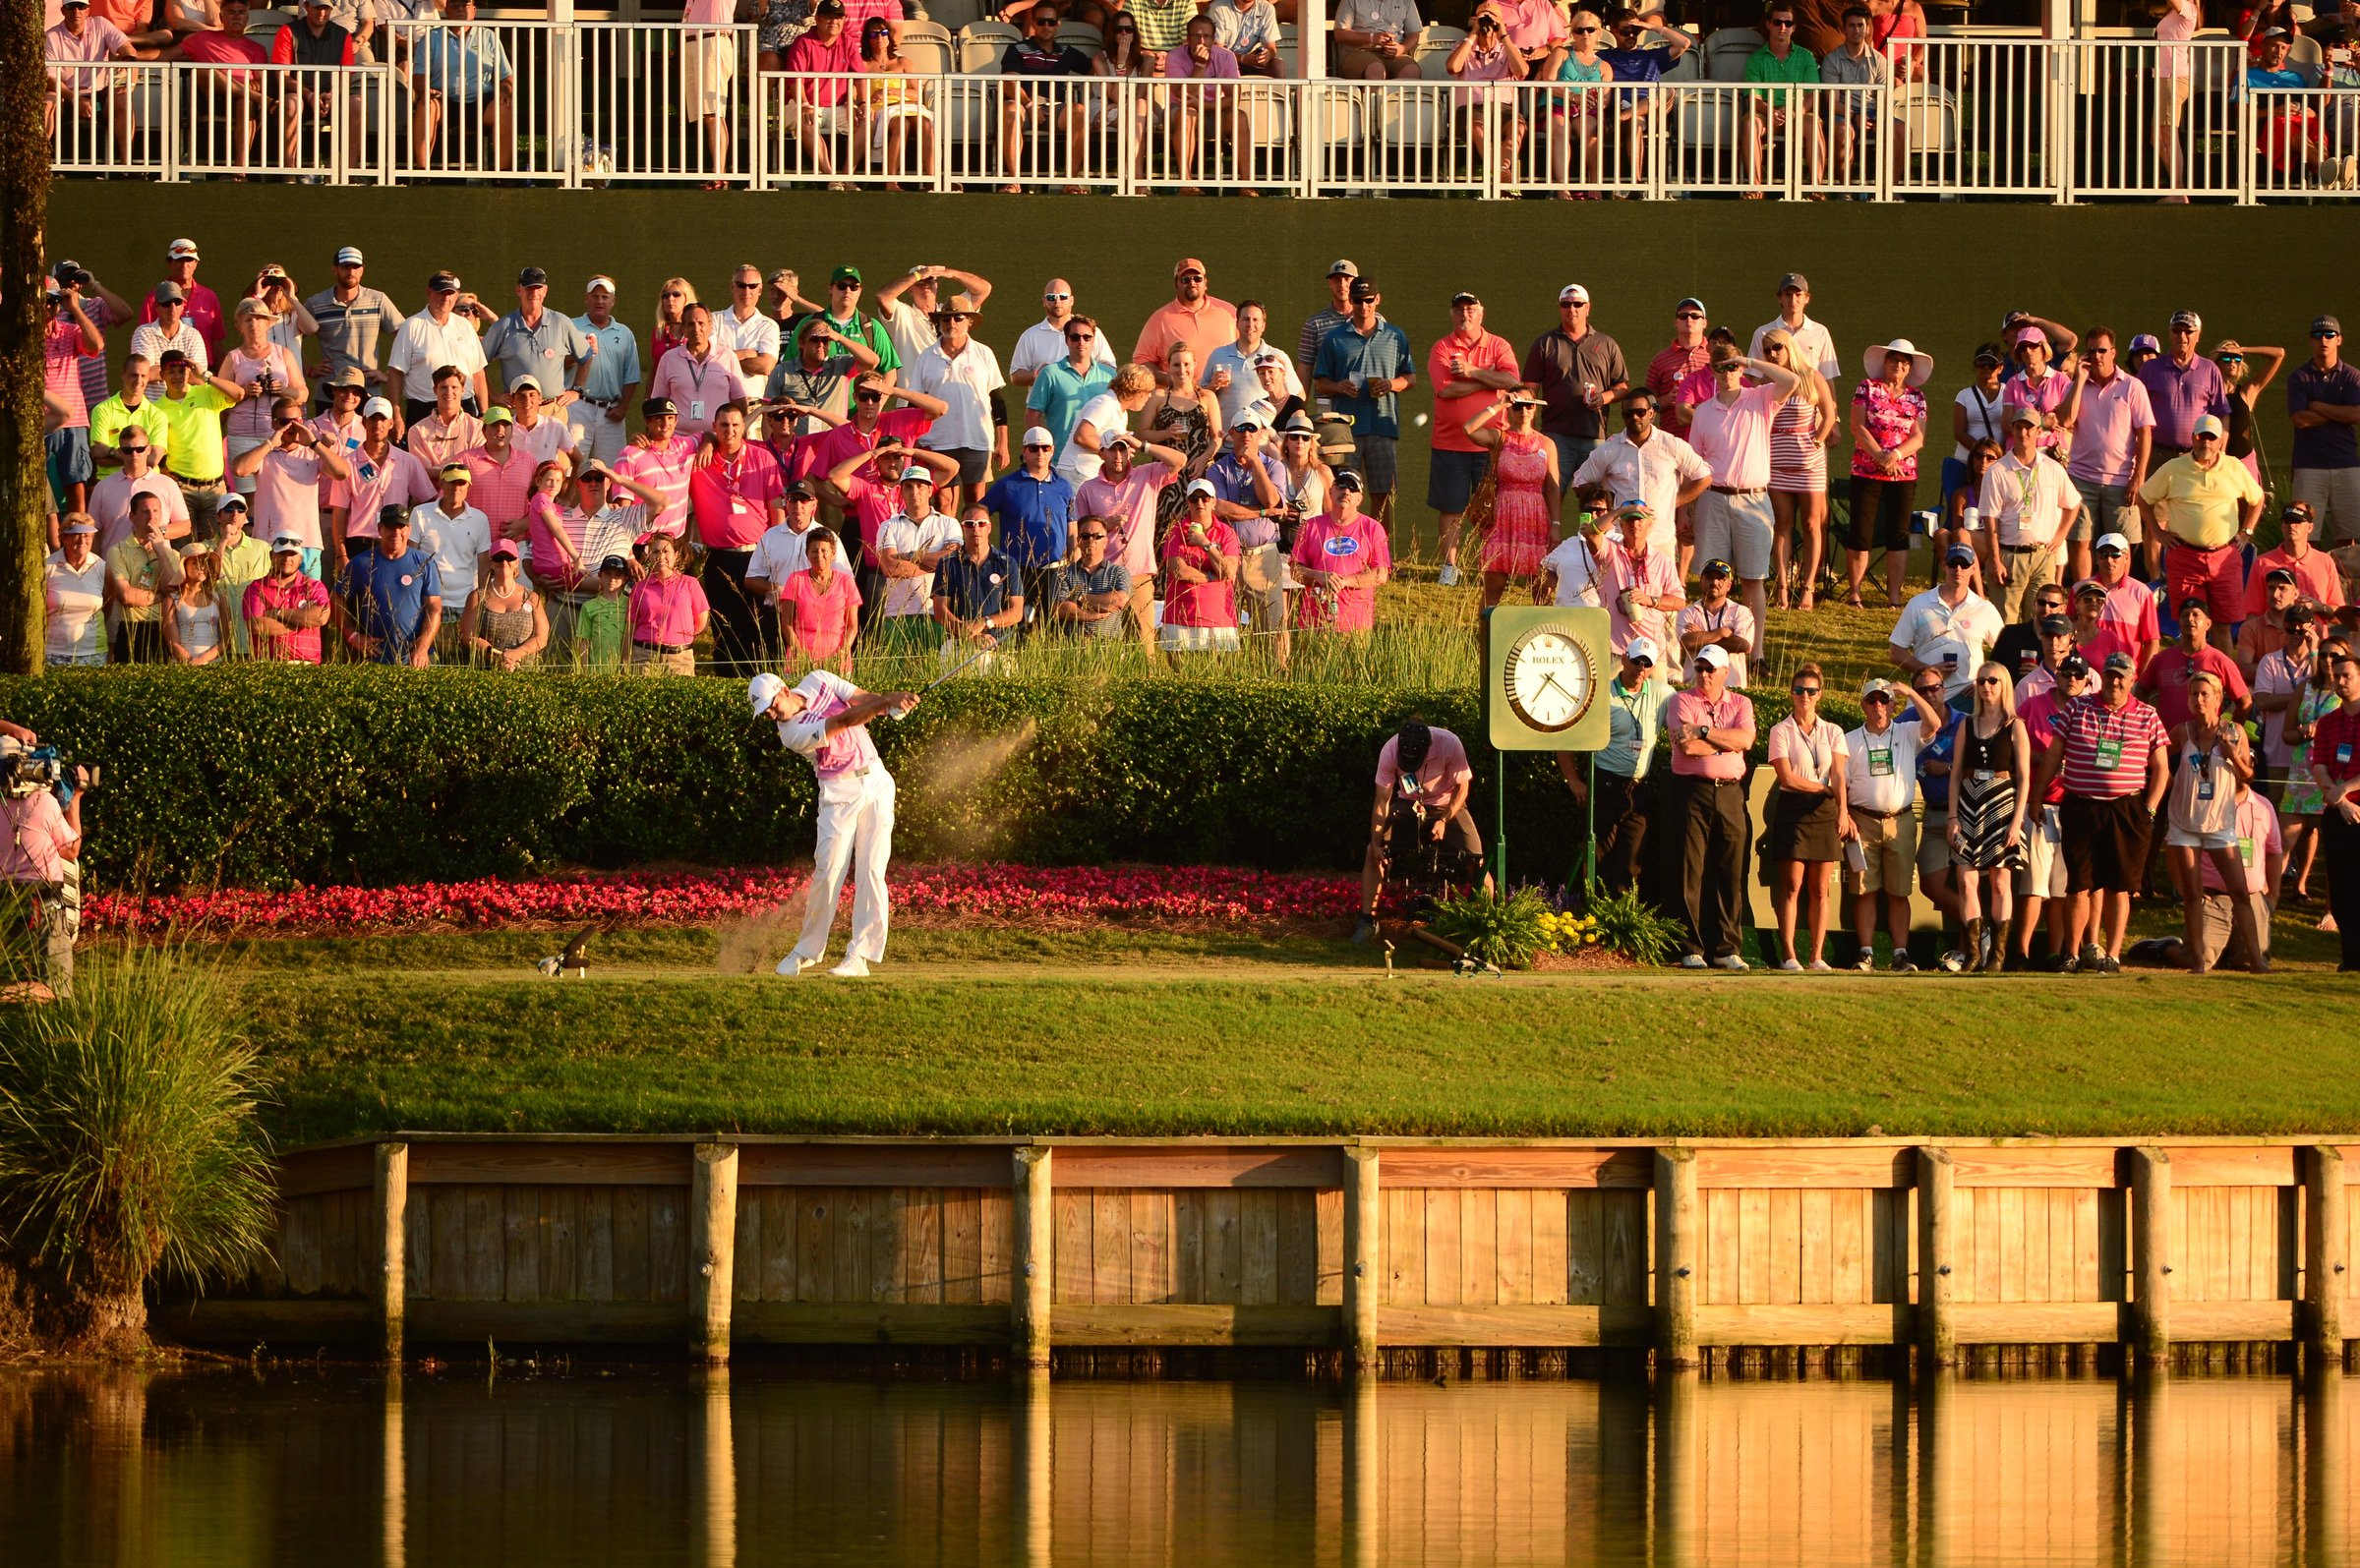 Rickie Fowler tees off on the 17th hole at TPC Sawgrass during the final round of the 2015 Players Championship.